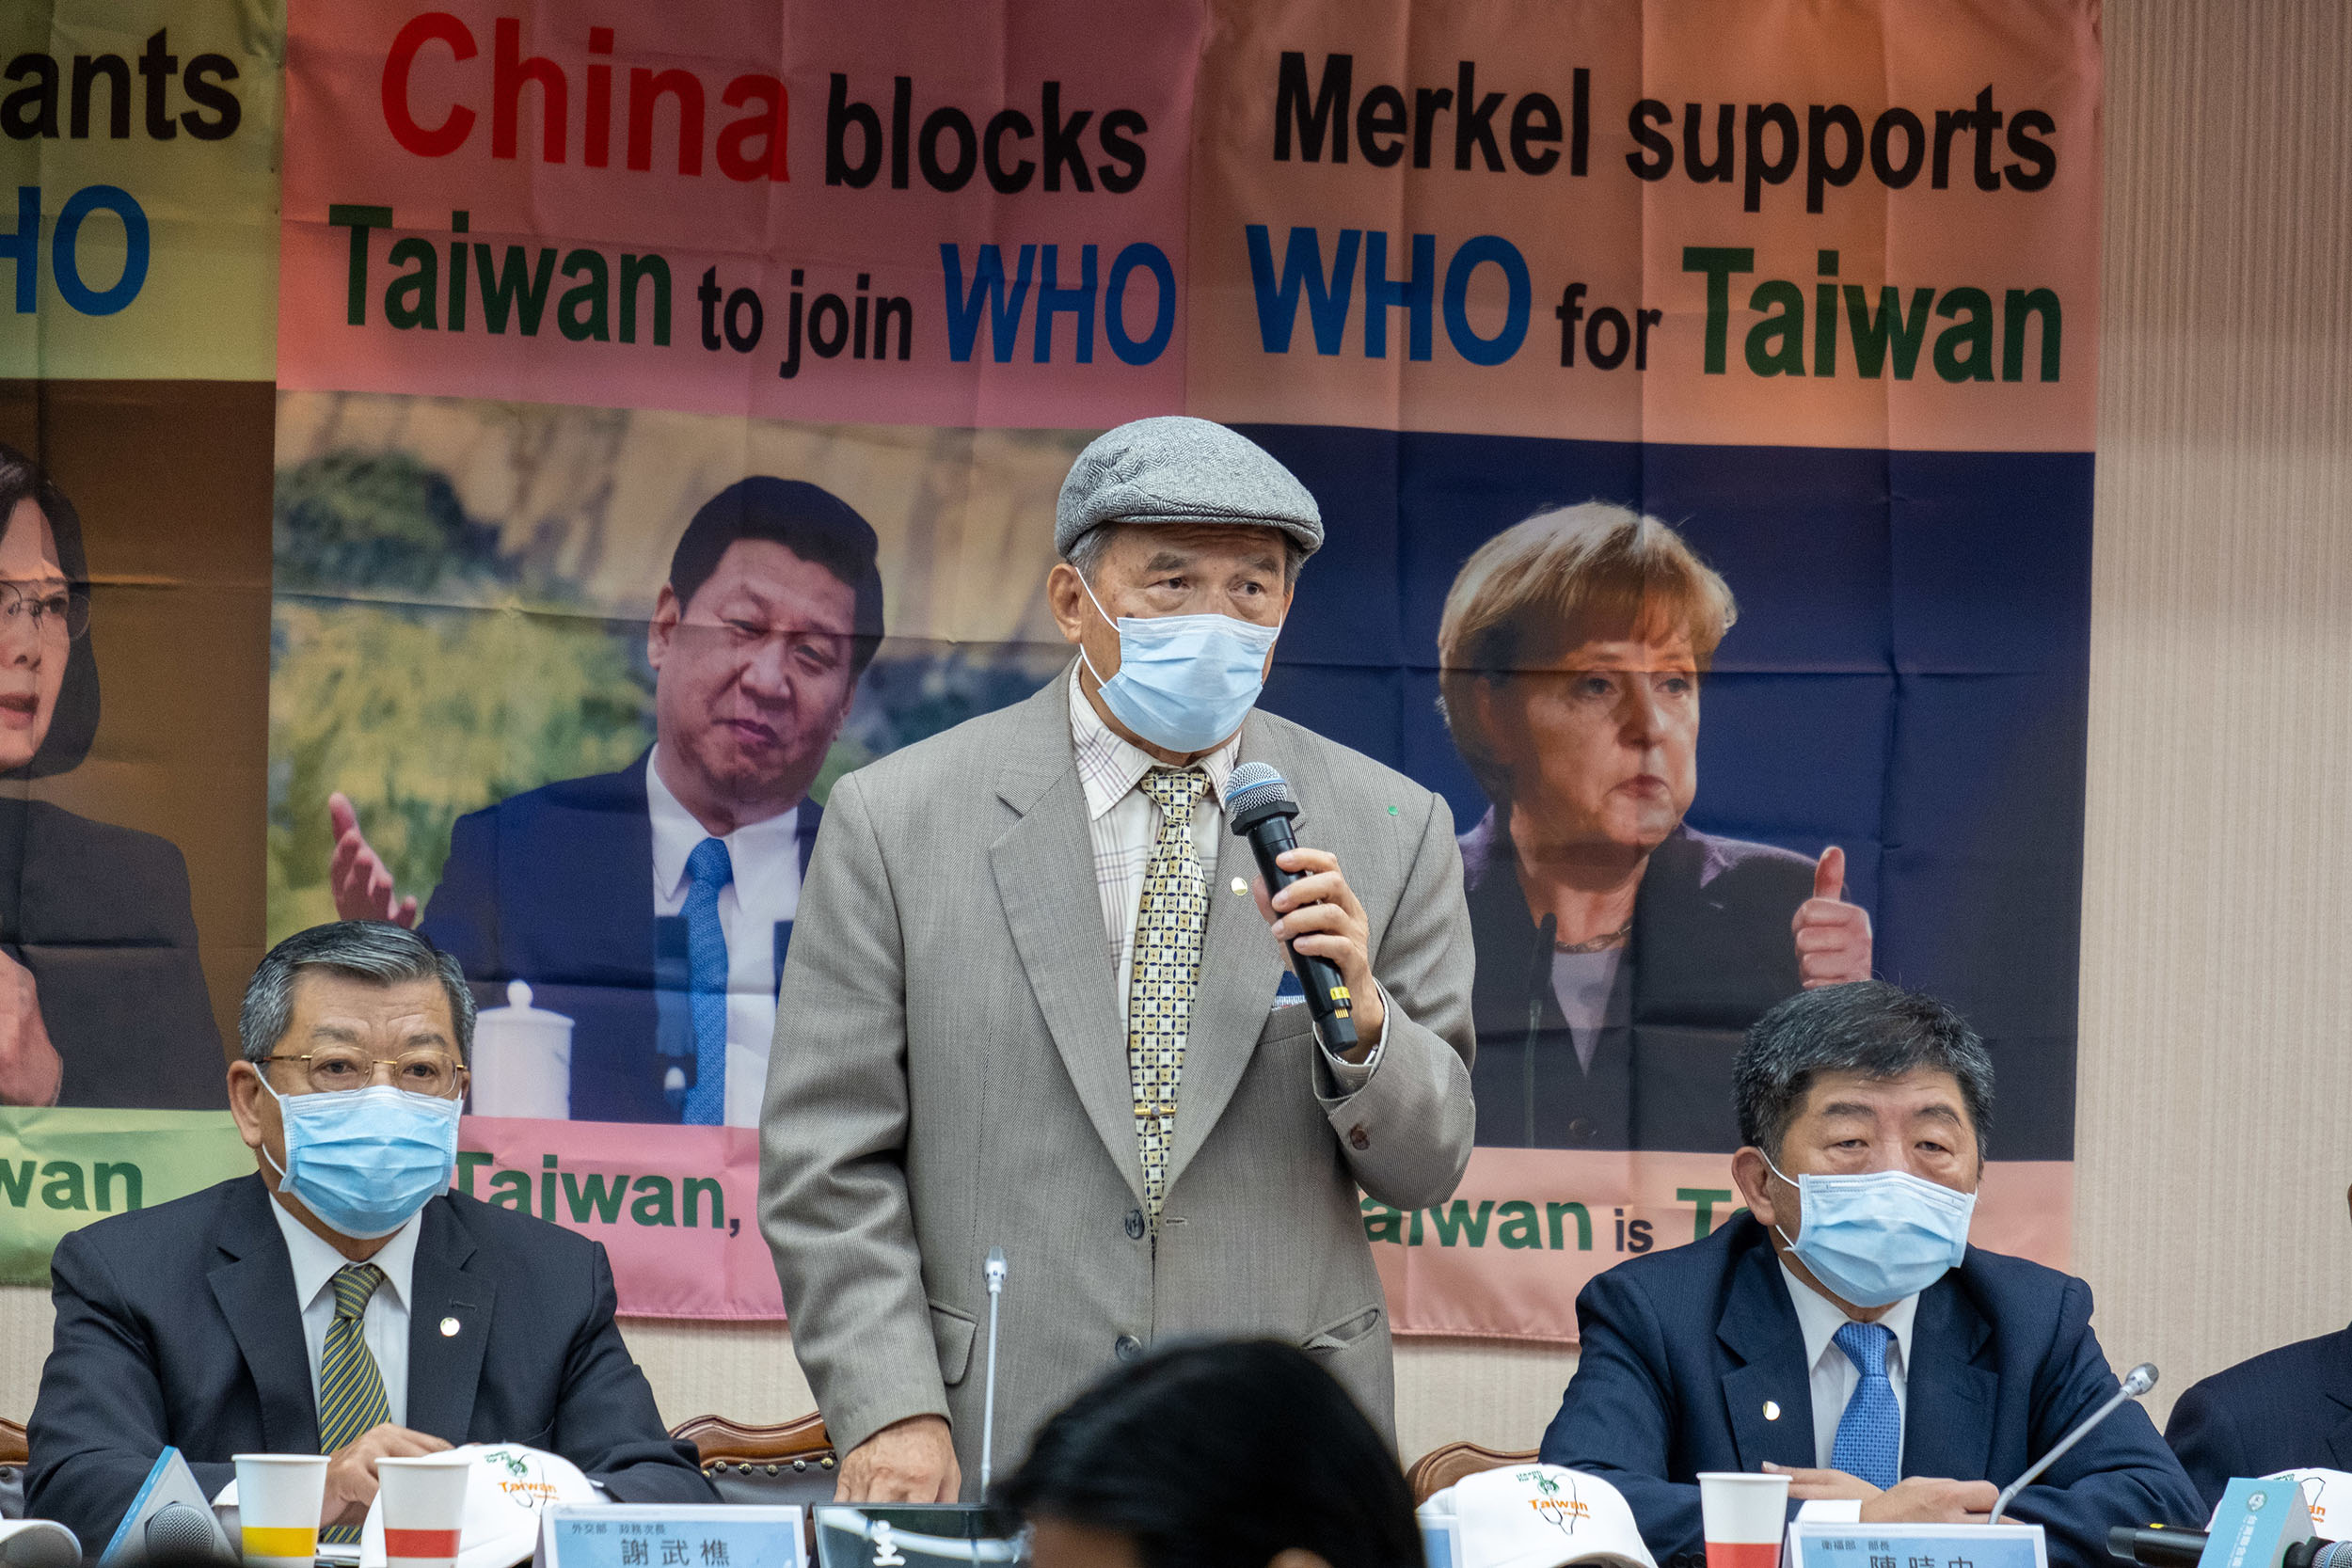 The Taiwan United Nations Alliance Chairman Michael Tsai, center, and Minister of Health Chen Shih-Chung, right, attend a conference on Taiwan's efforts to enter the World Health Assembly hosted by the World Health Organization in Taipei, Taiwan, on Friday, May 15.